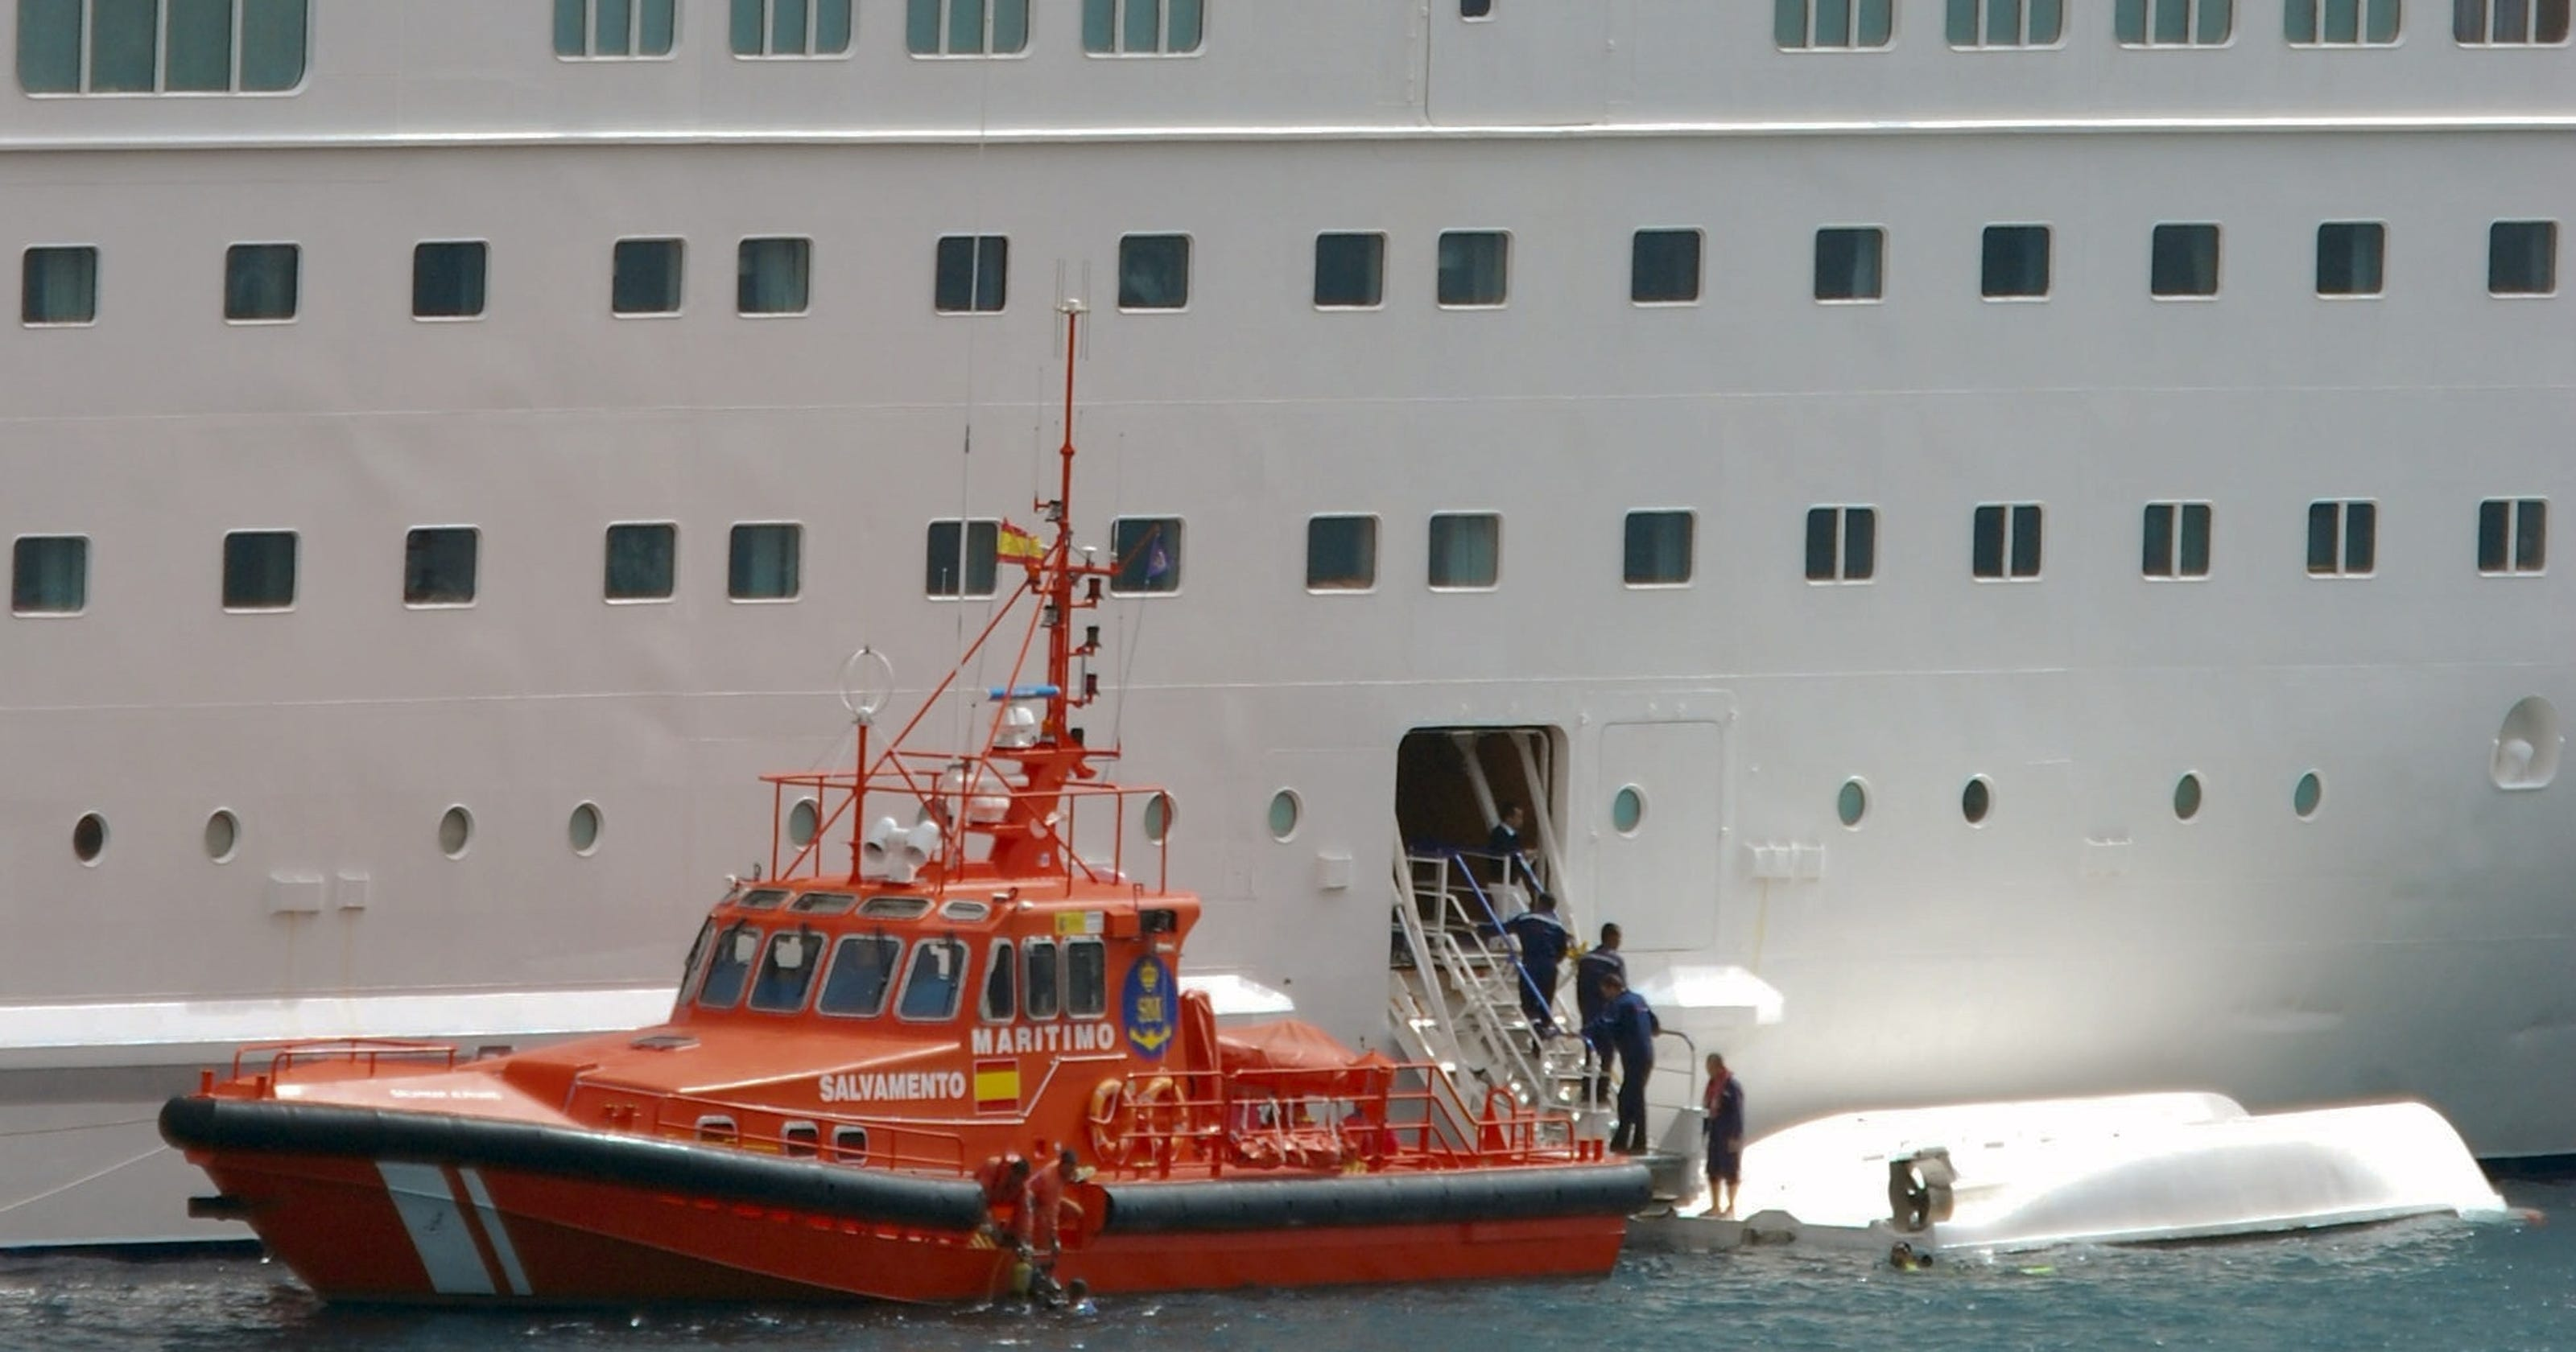 5 Dead 3 Injured In Cruise Ship Accident In Spain